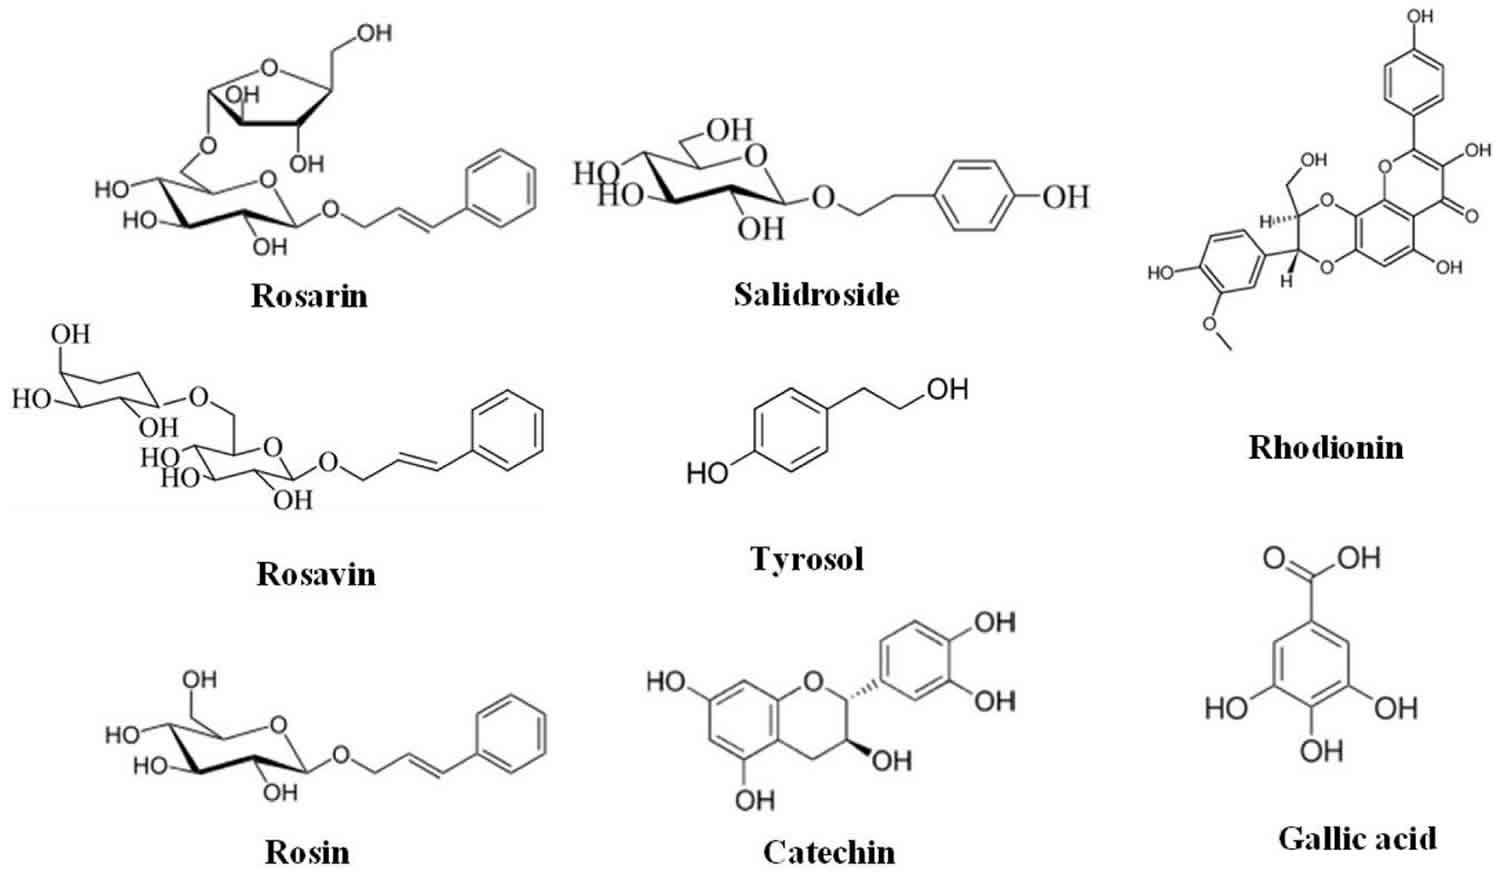 Rhodiola rosea extracts bioactive compounds